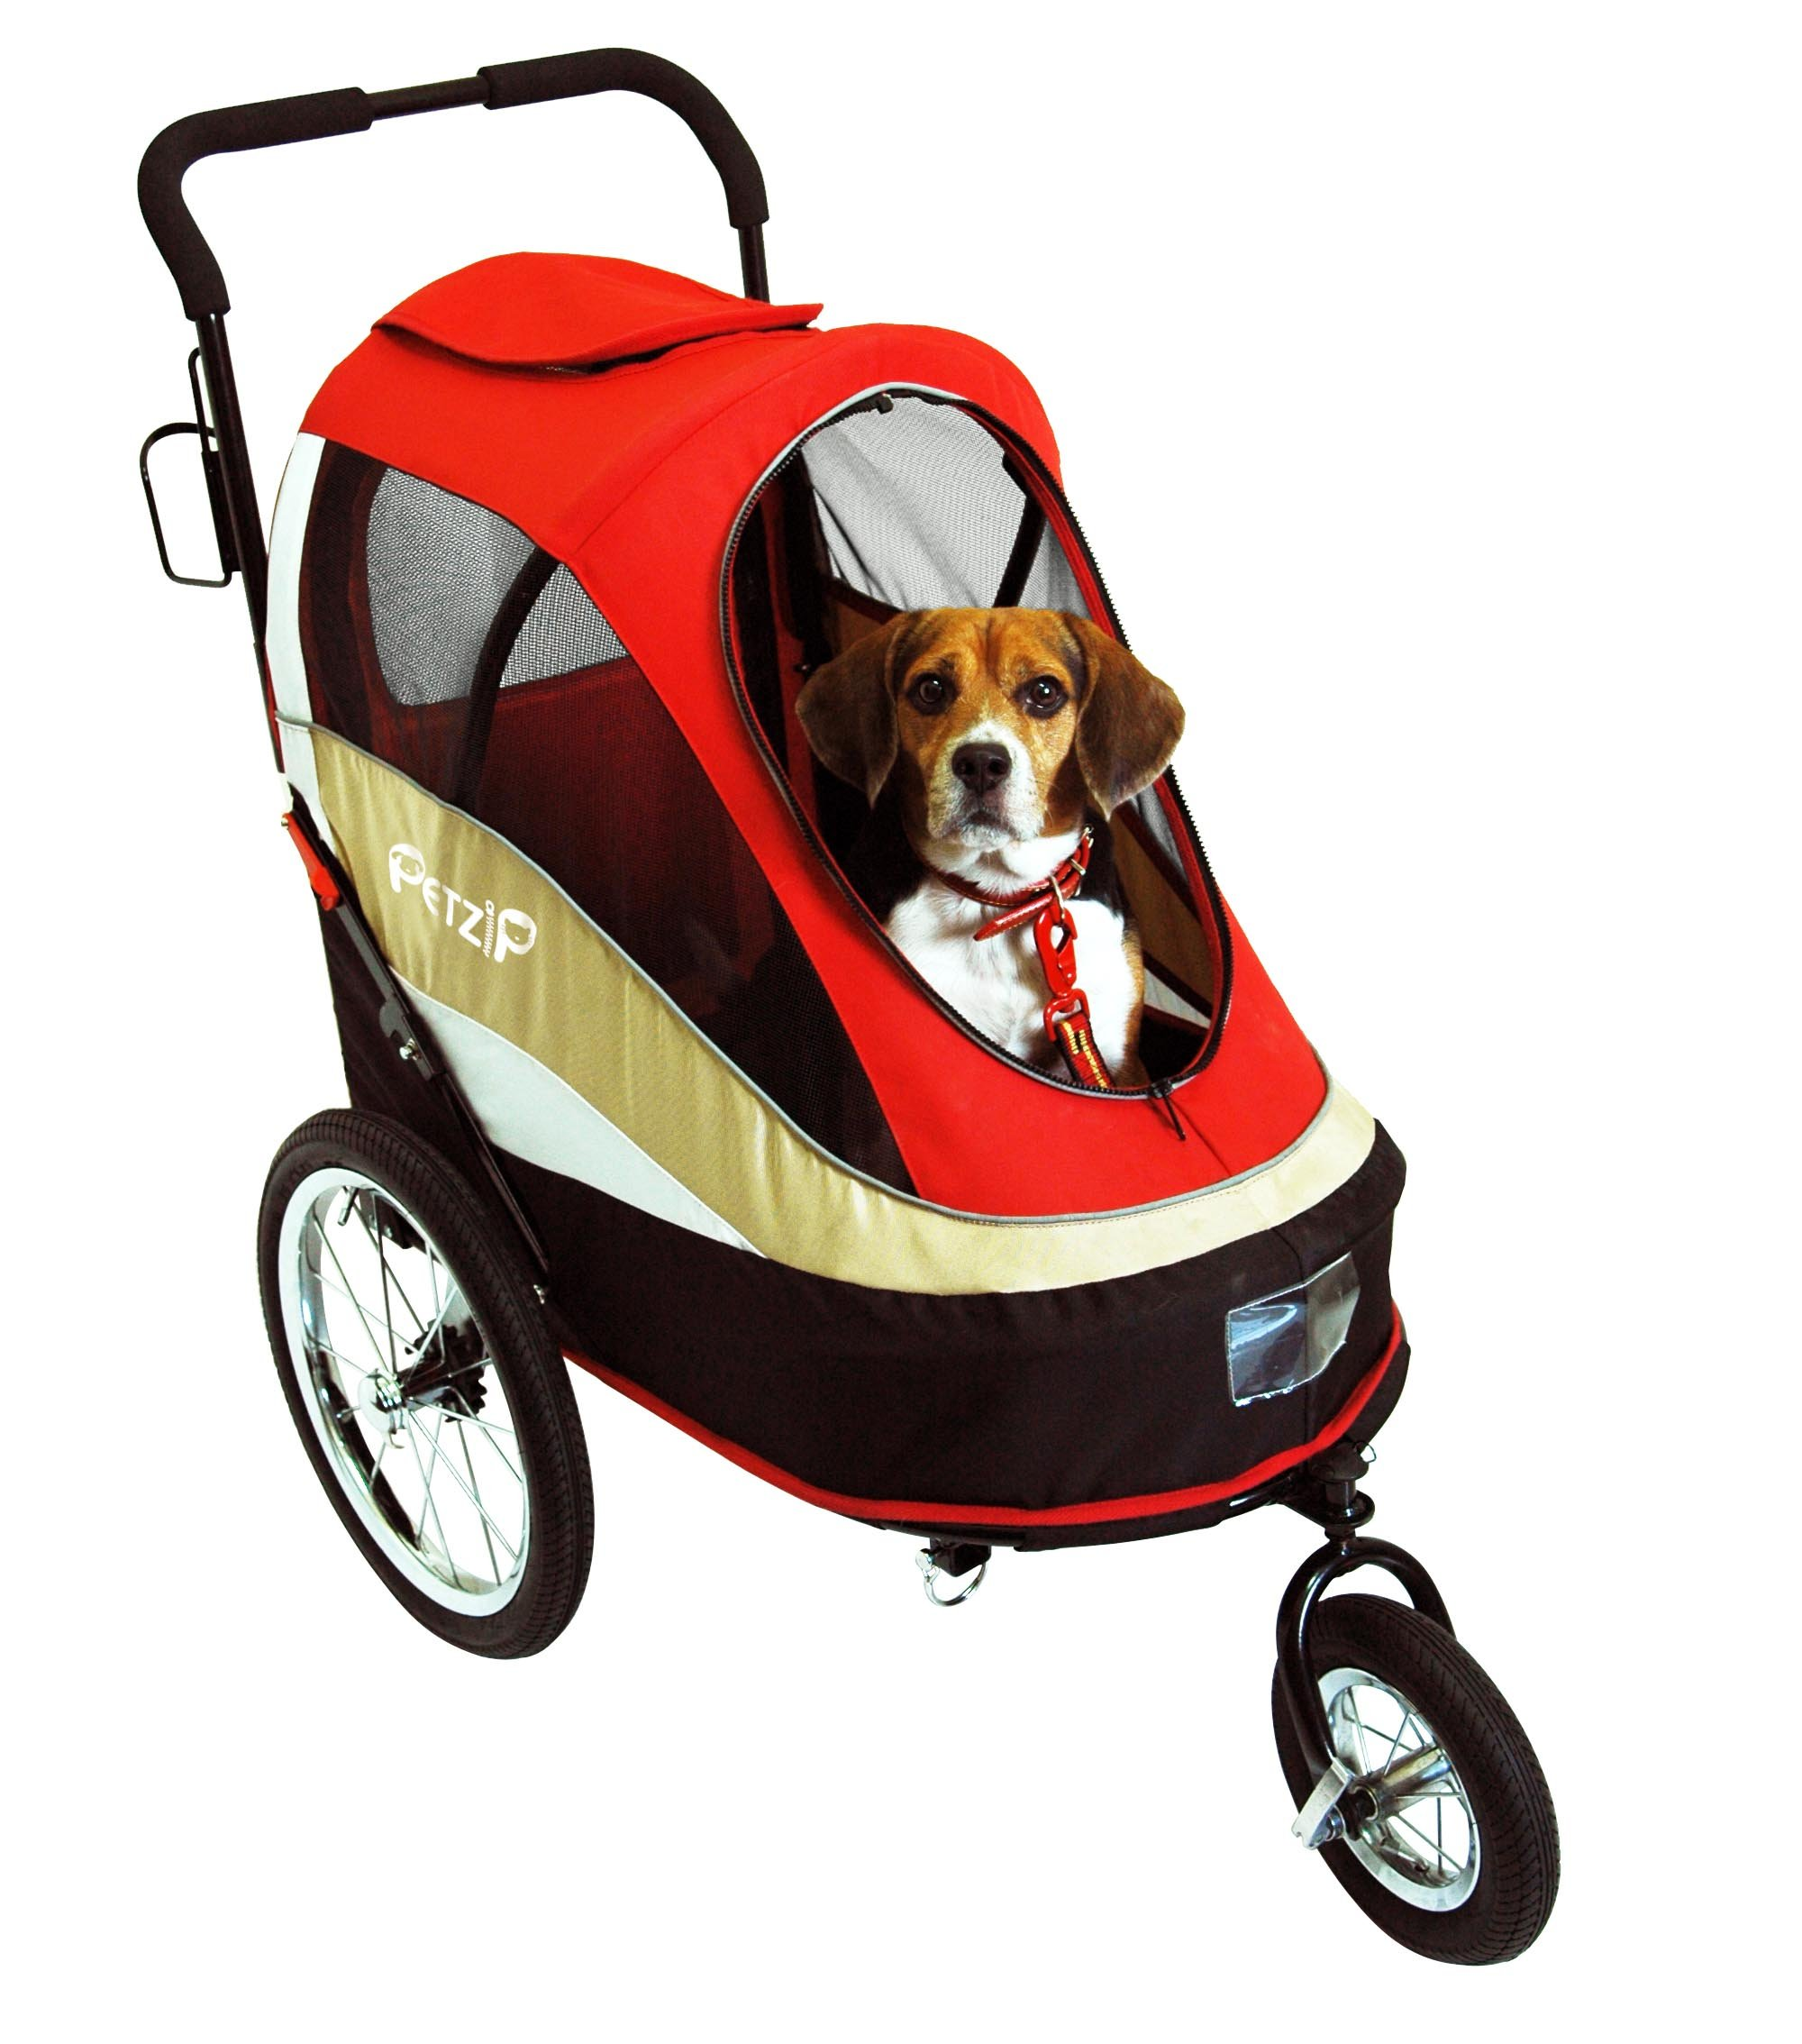 PetZip Pet Happy Trailer Stroller, Red